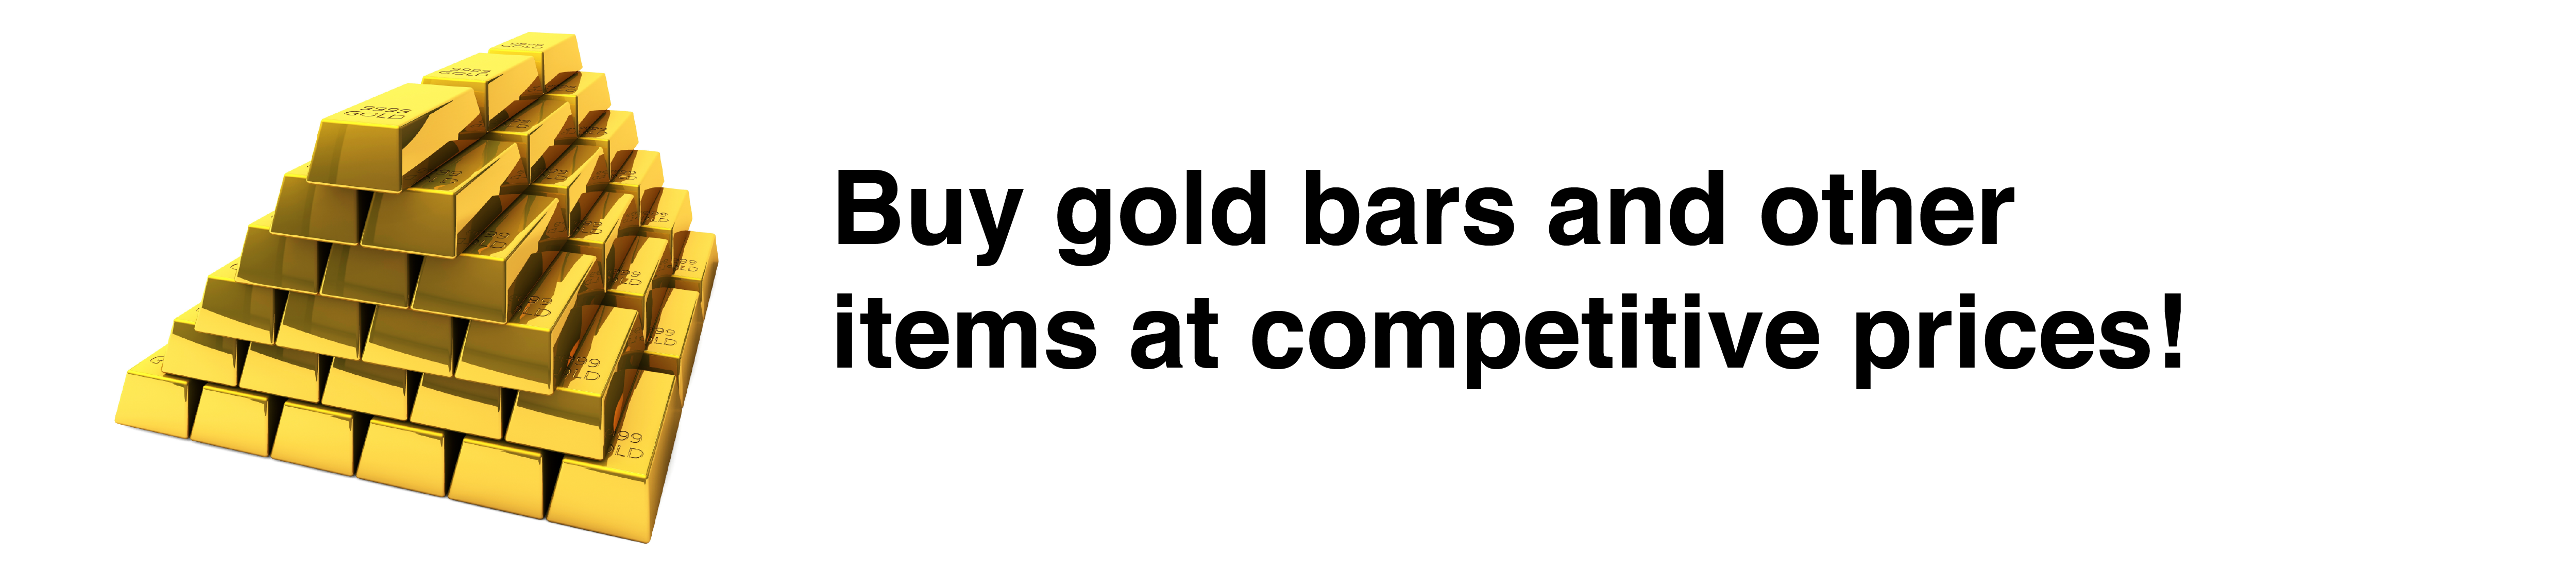 Purchase gold bars and other items at competitive prices